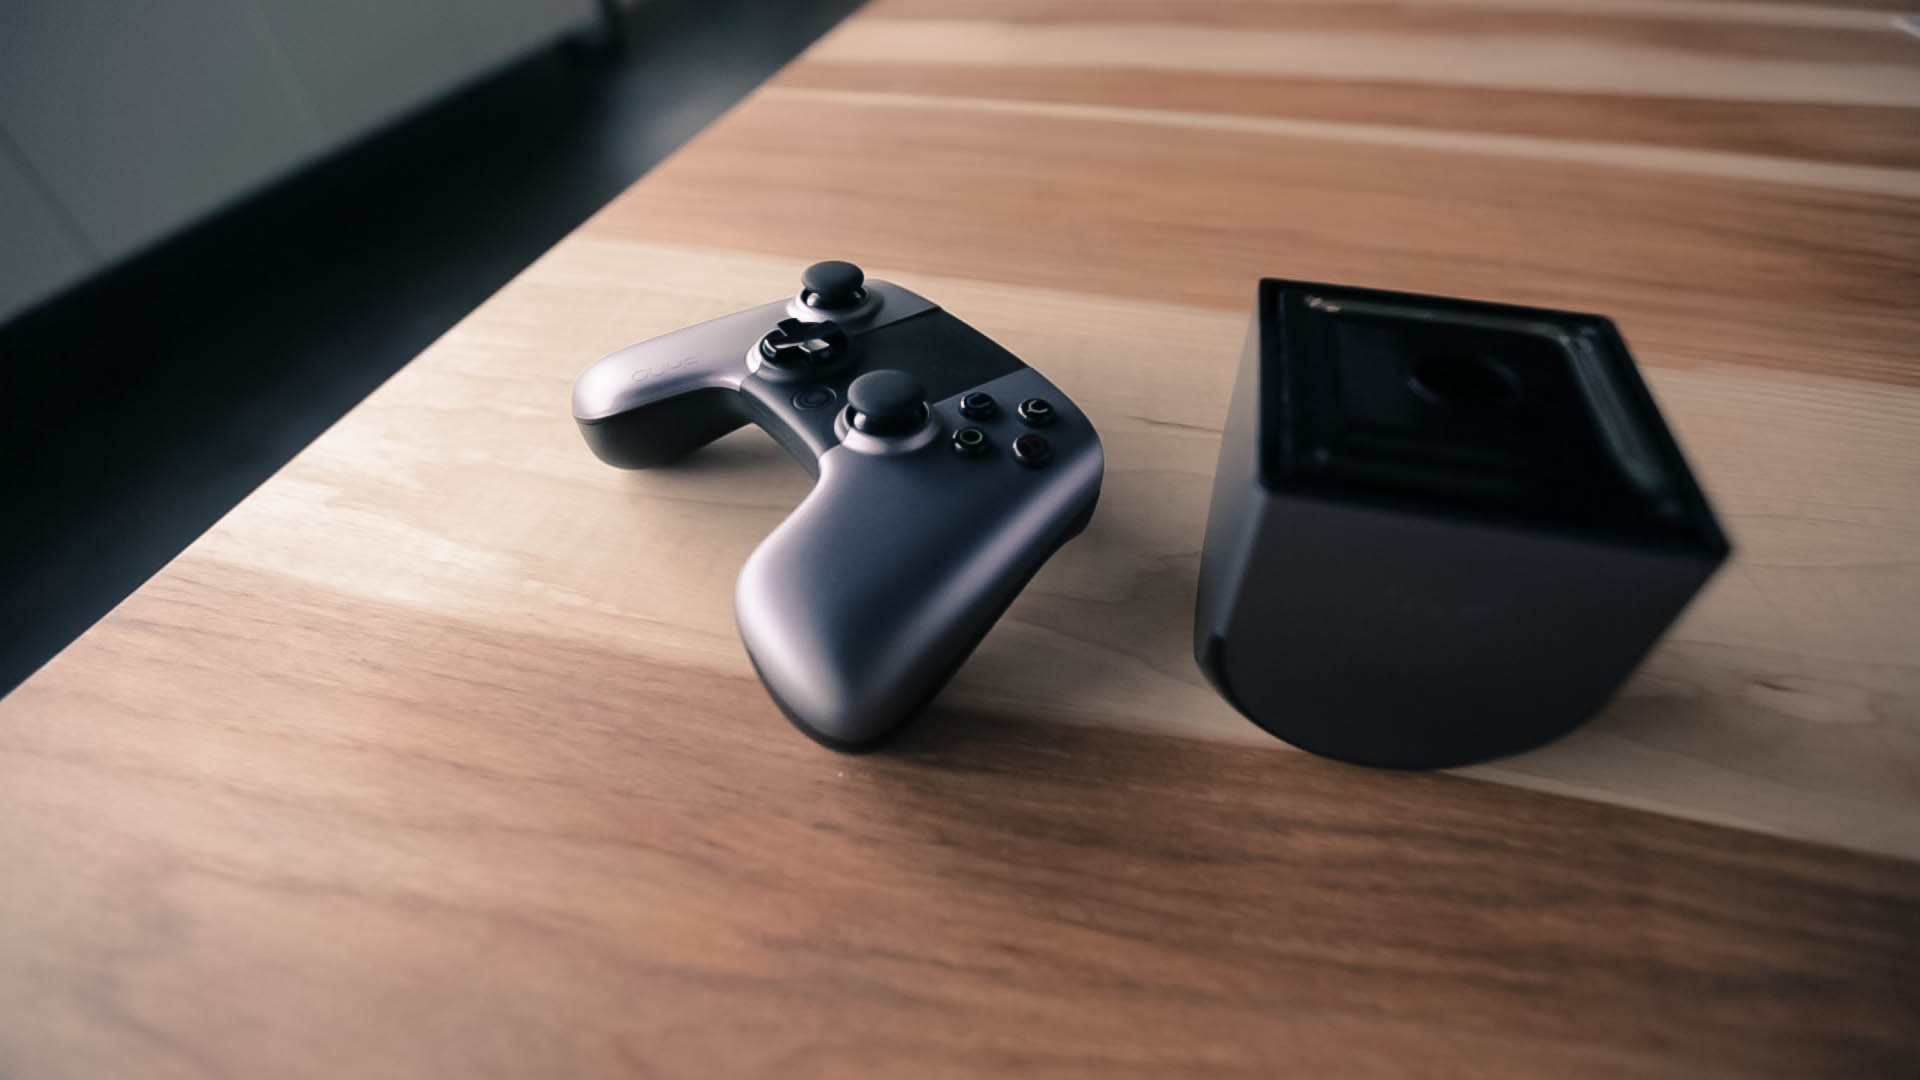 The Kickstarter darling comes home: hands on with the Ouya | Polygon